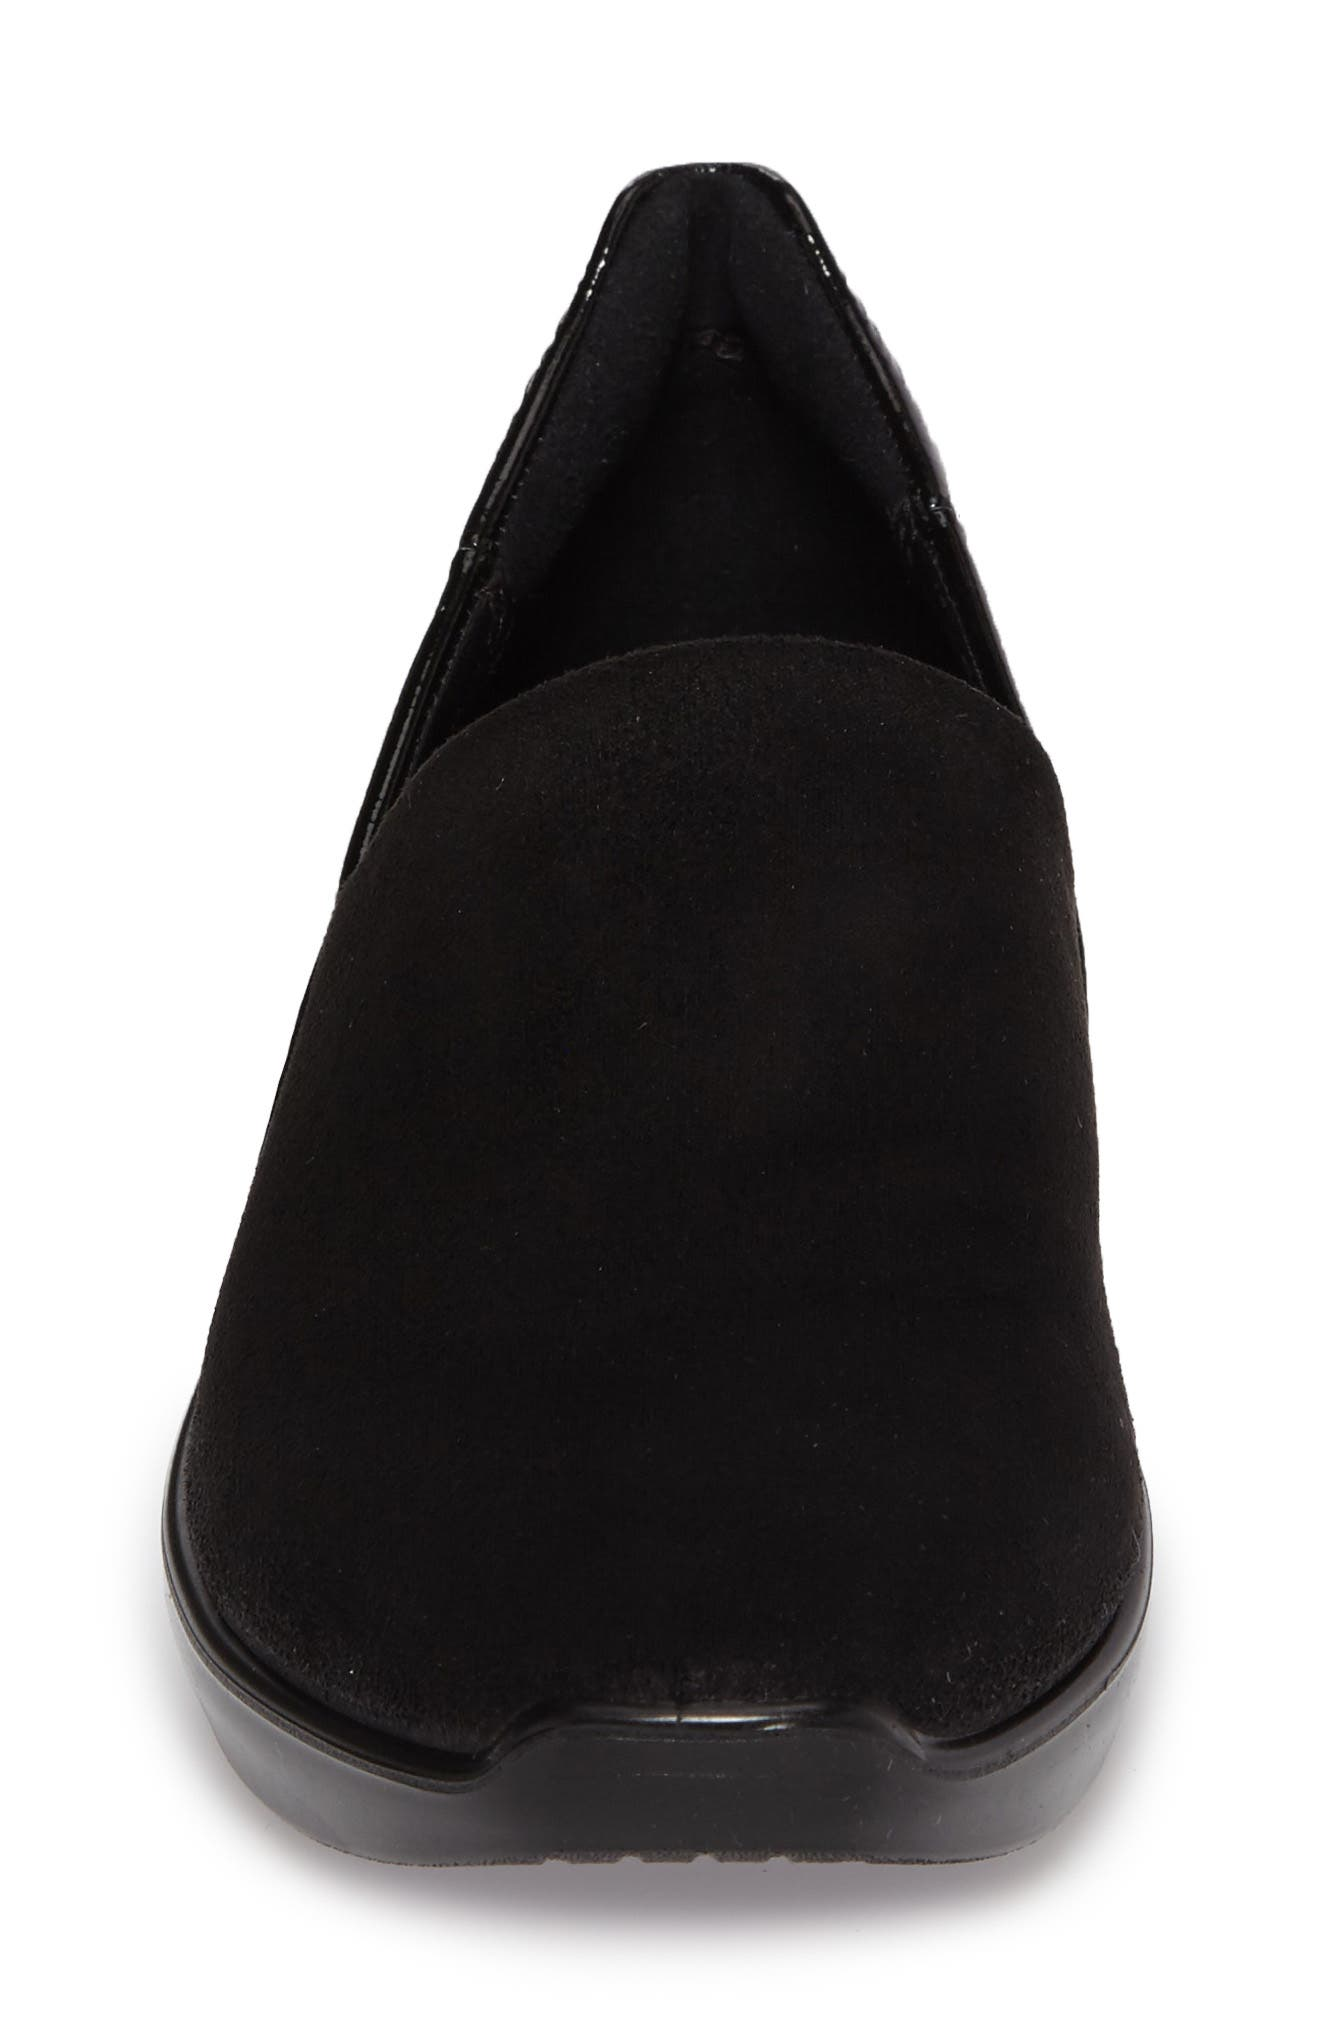 Incise Urban Slip-On Wedge,                             Alternate thumbnail 4, color,                             Black Faux Leather